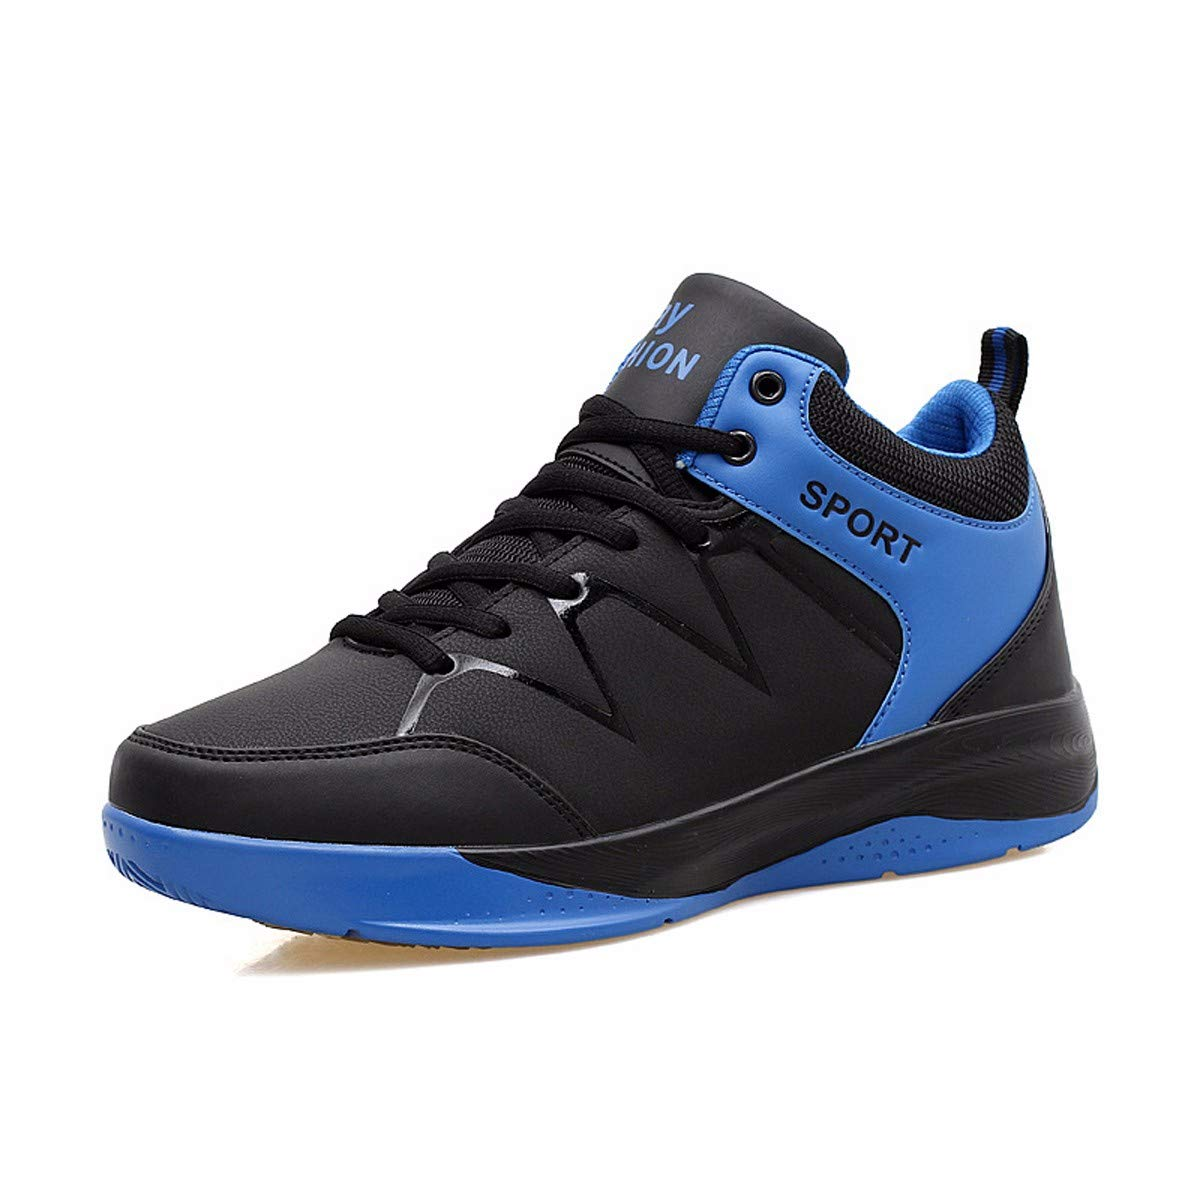 KMJBS-Men's Basketball Schuhes Summer Students Outdoor Men's Schuhes High Band Blau 39